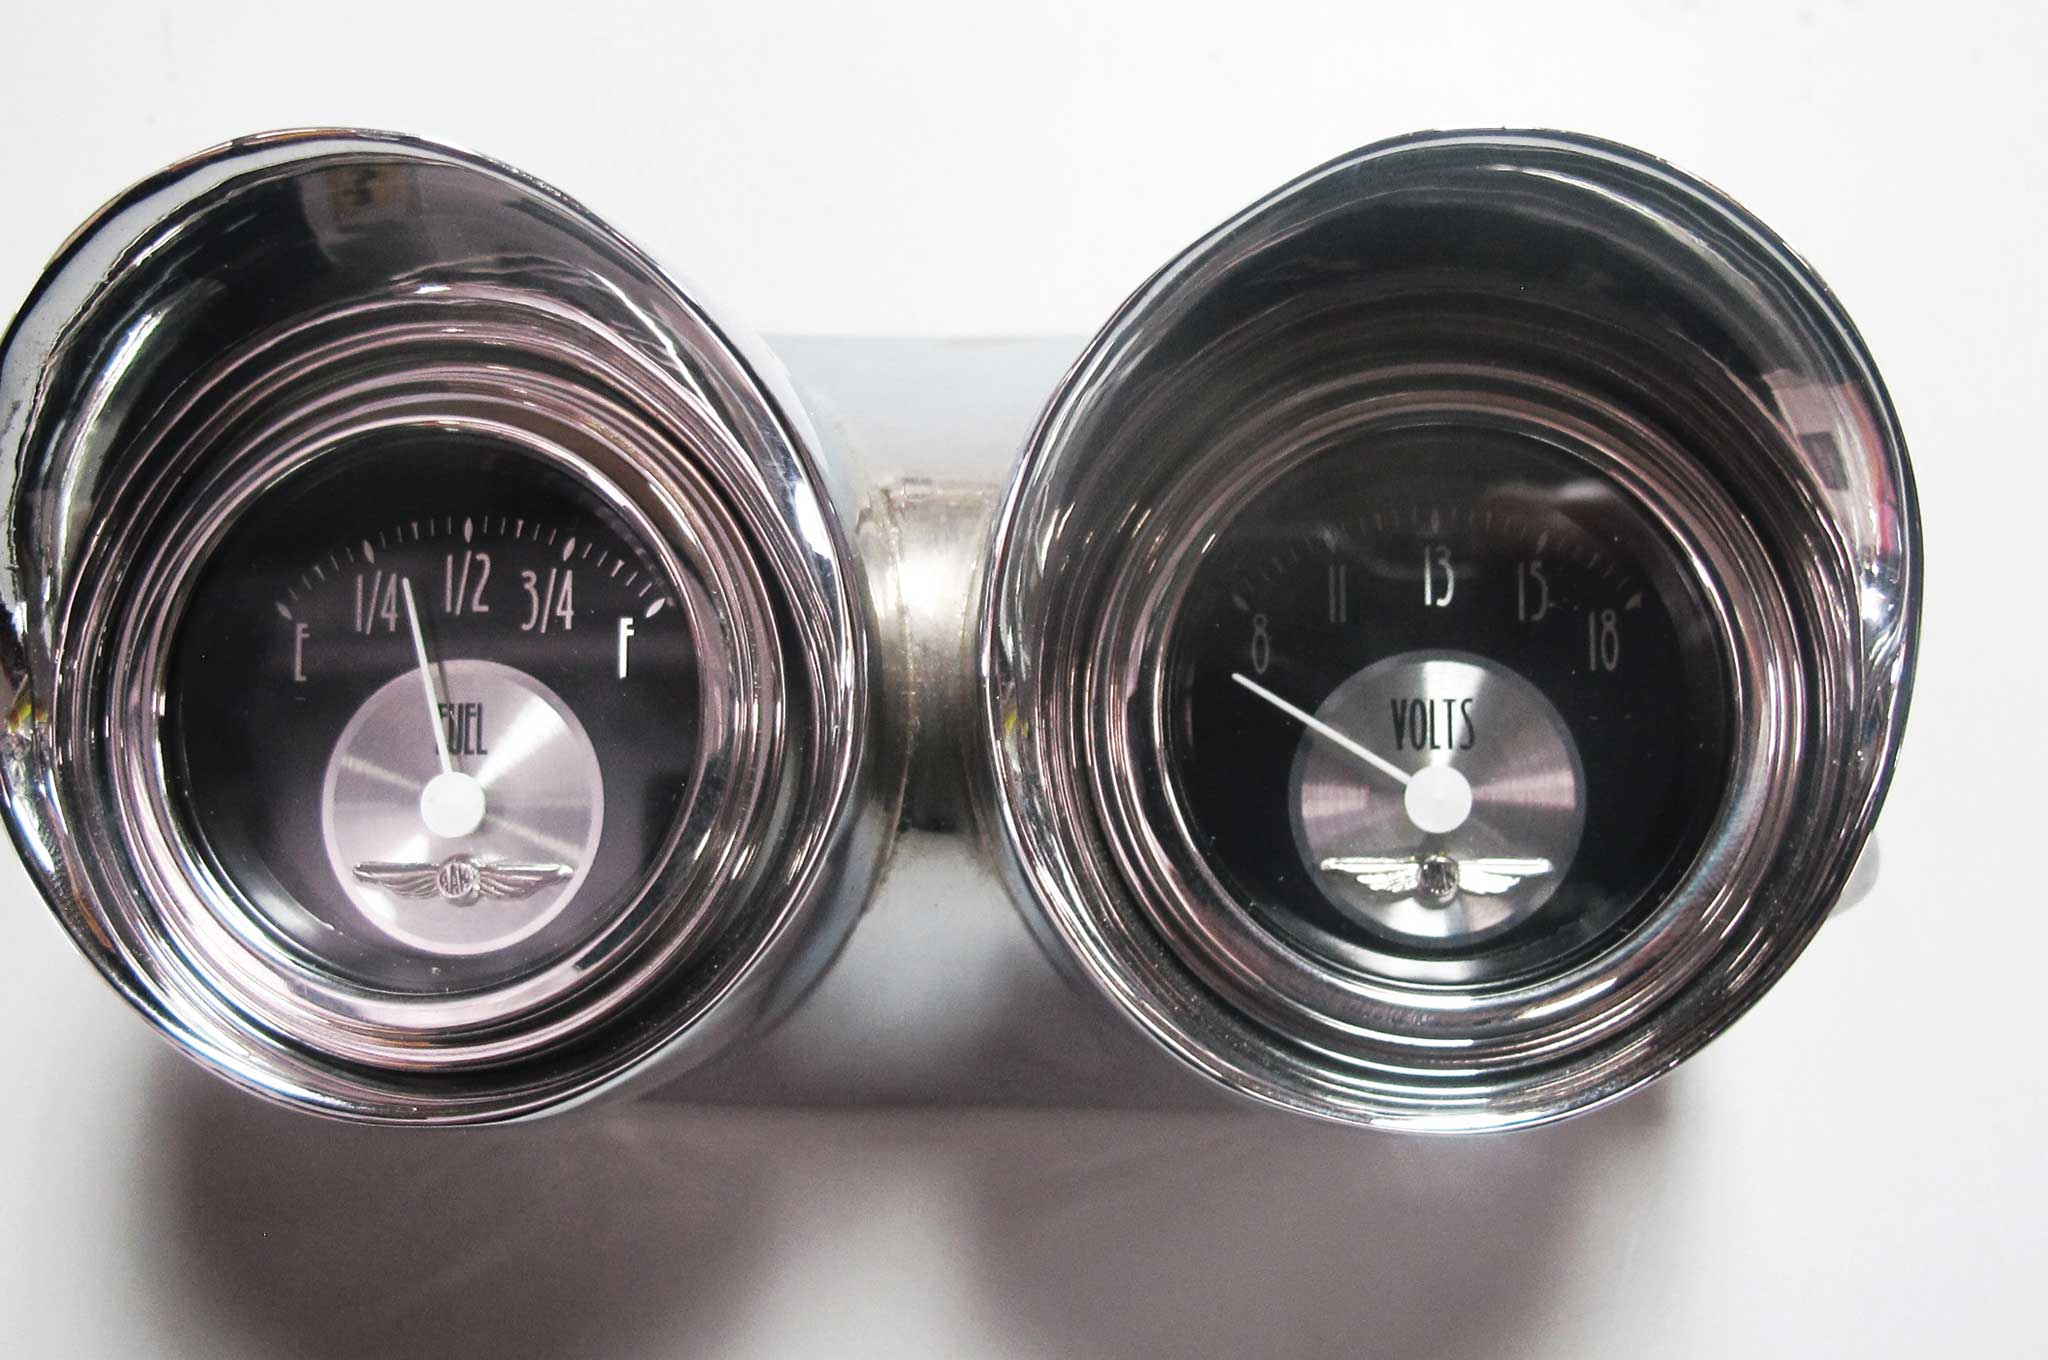 classic-industries-direct-fit-gauges-install-temperature-and-voltage-gauges